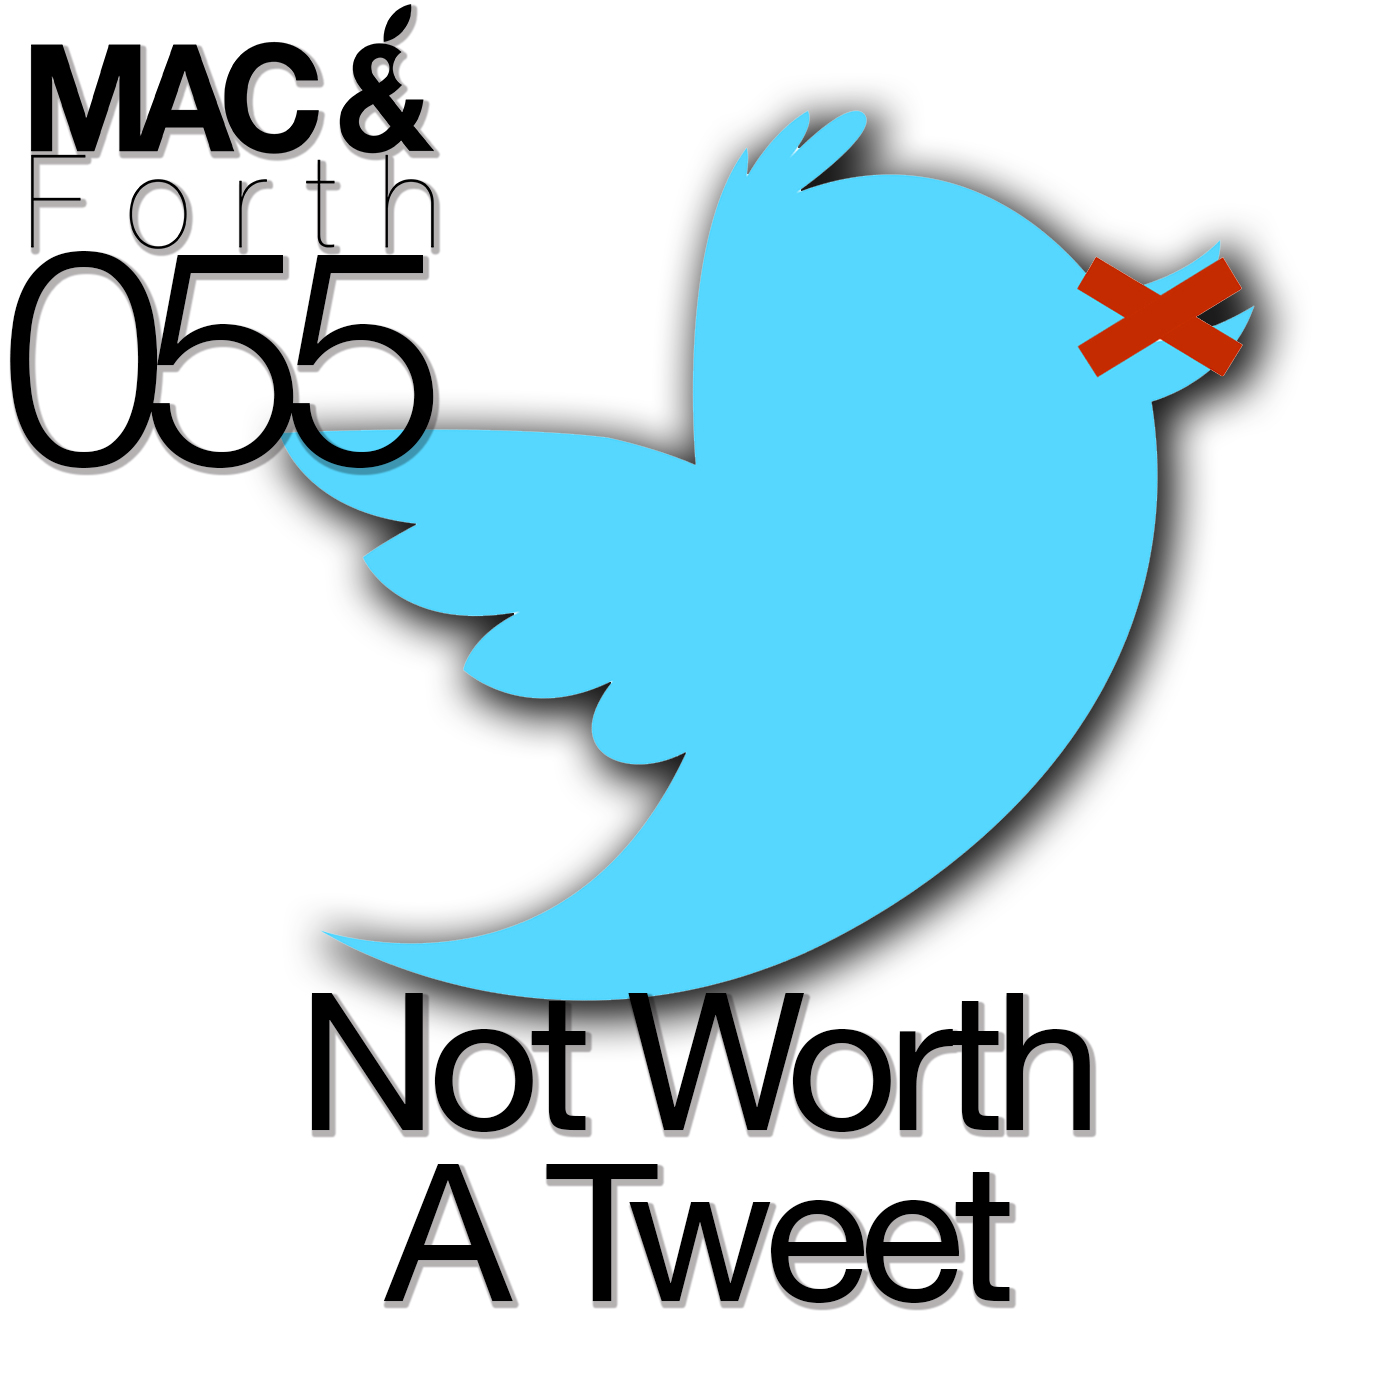 The Mac & Forth Show 055 - Not Worth A Tweet